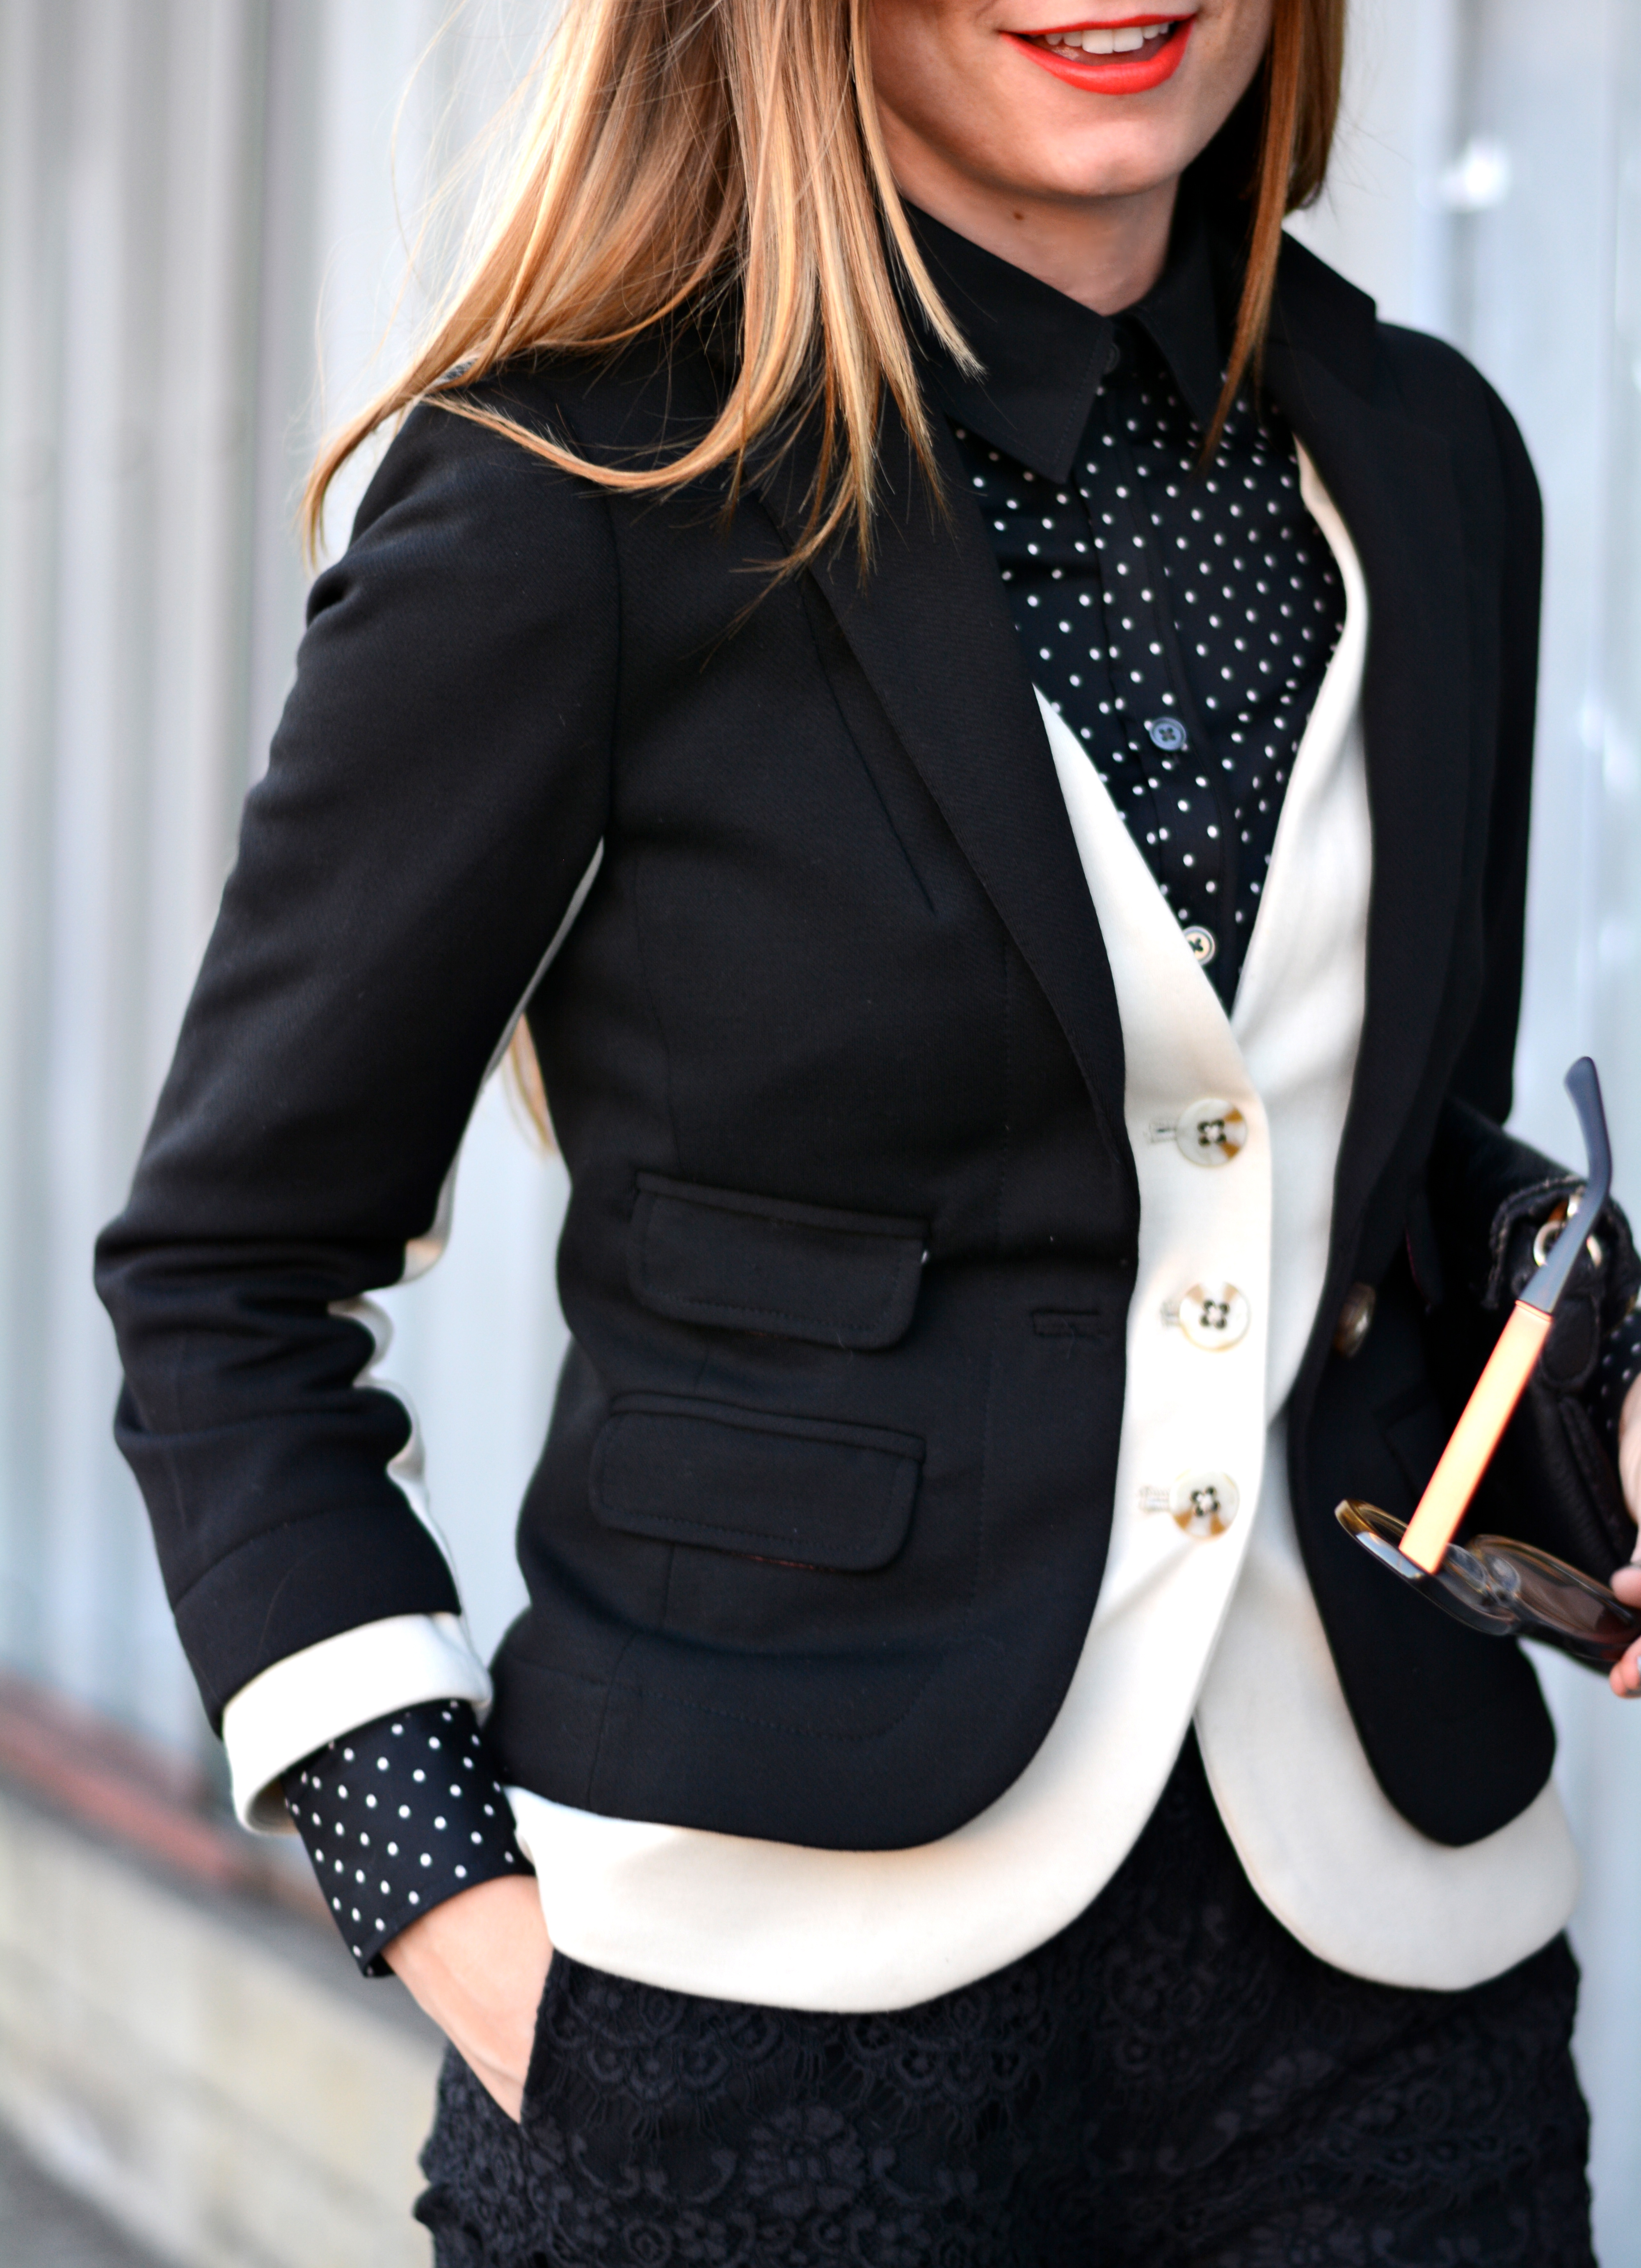 Best bloggers 2016, black and white outfit, holiday outfit ideas, holiday outfits